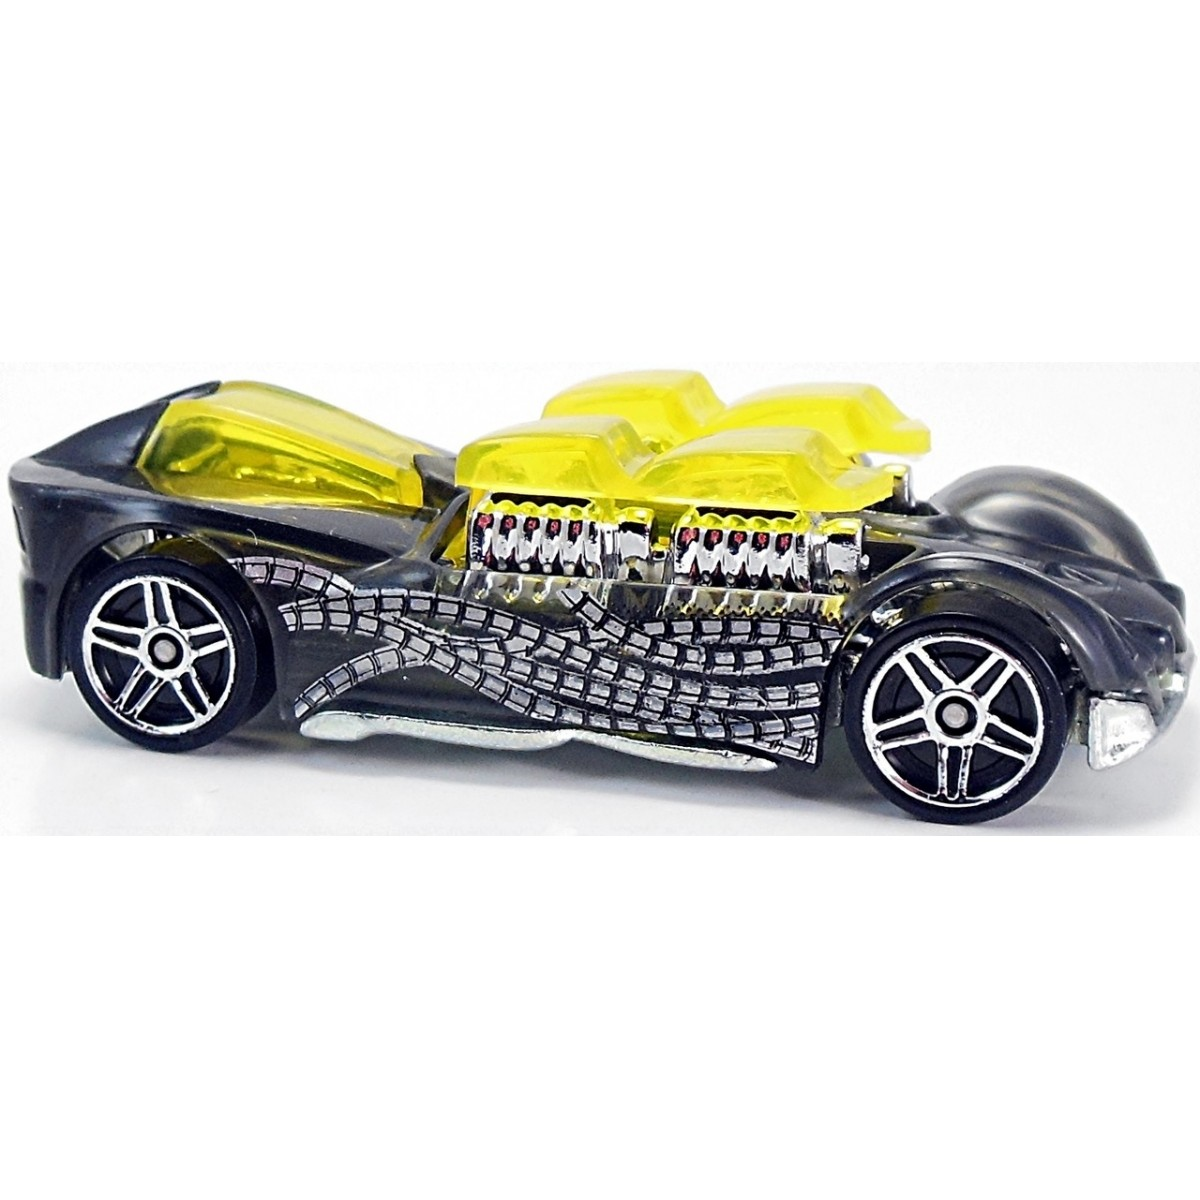 Carrinho Hot Wheels: What-4-2: Ultimate Spider-Man Sinister 6 Preto